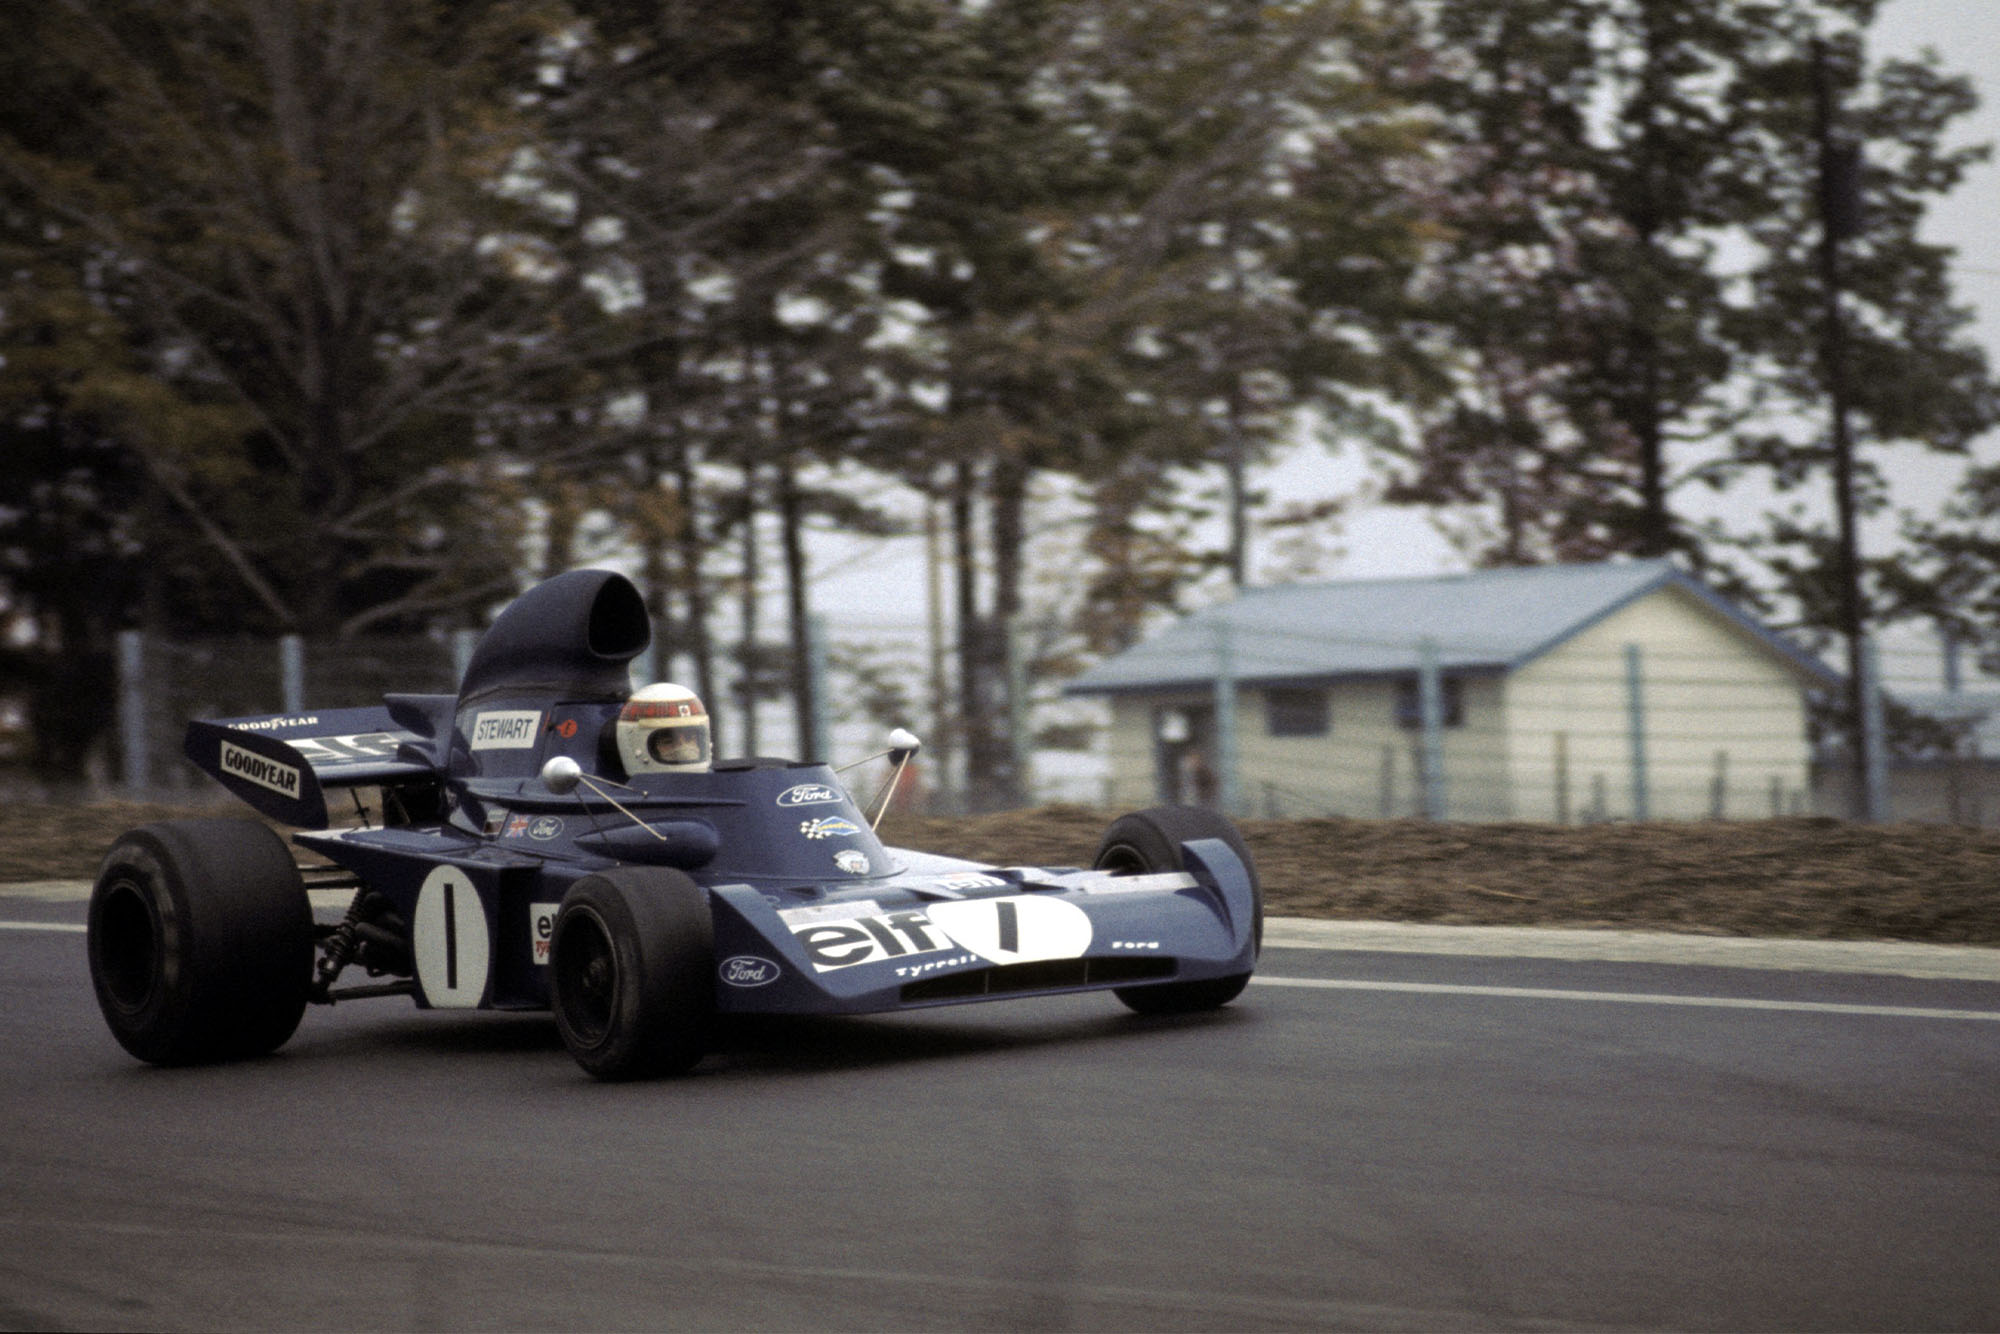 Jackie Stewart driving for Tyrrell the 1972 United States Grand Prix, Watkins Glen.